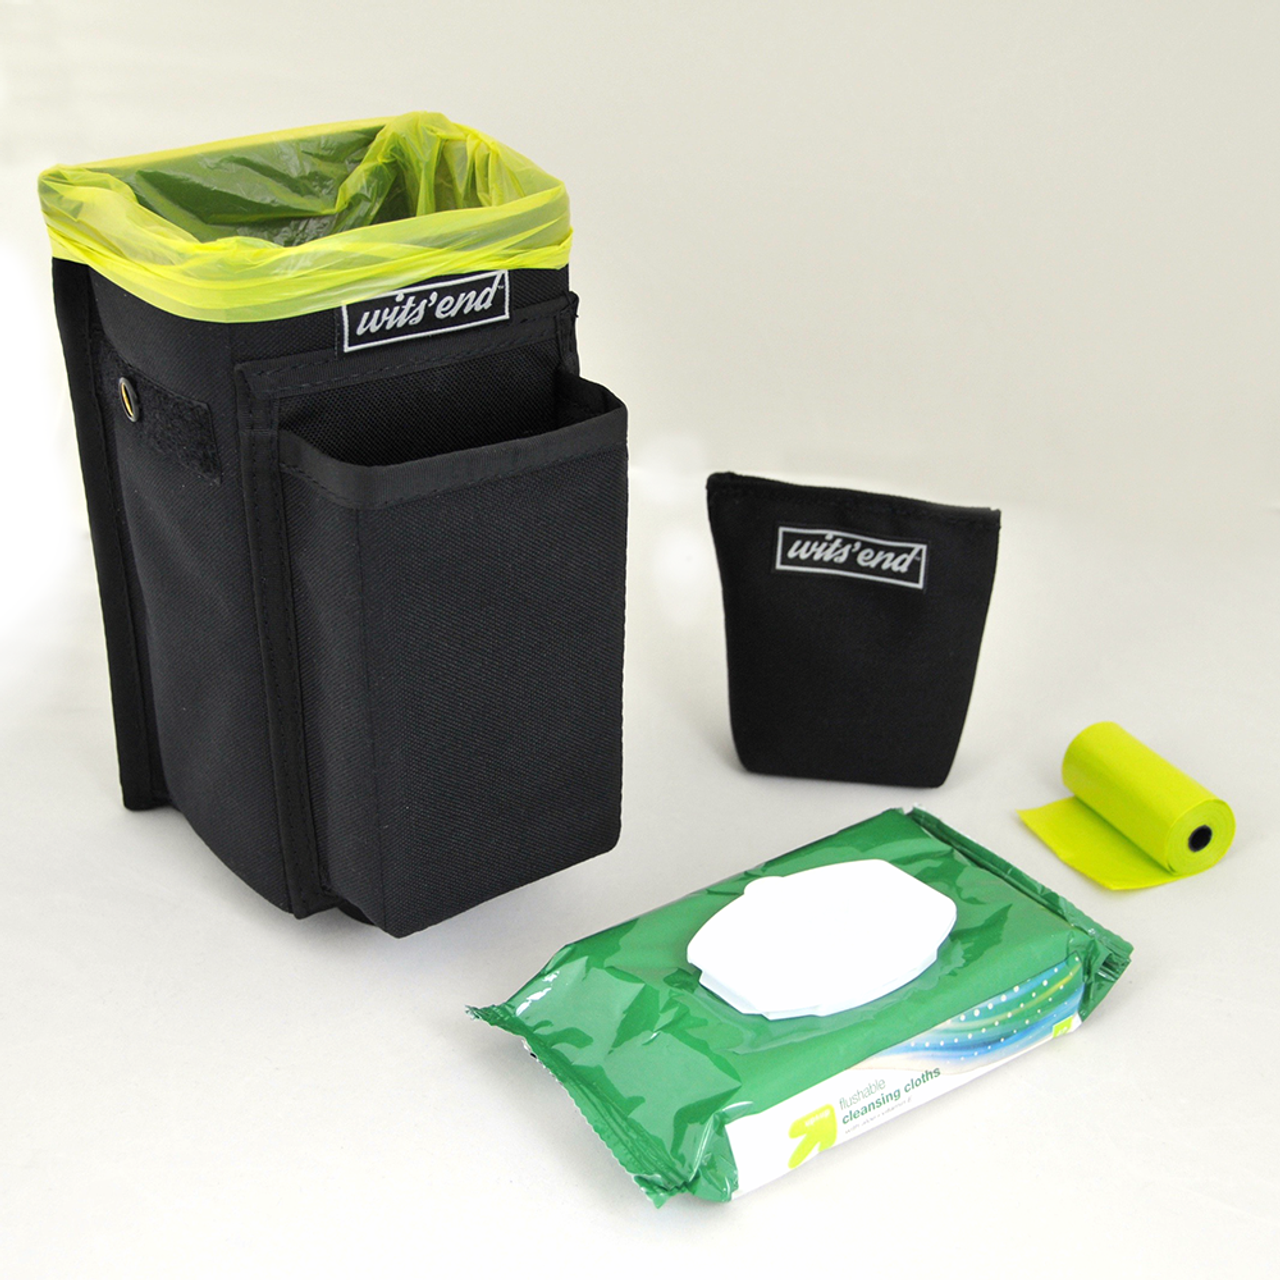 Refuse Containment System- Main Unit (RCS-1) Main bin comes with weighted sand bag, pack of wet wipes and roll of doggie poo bags.